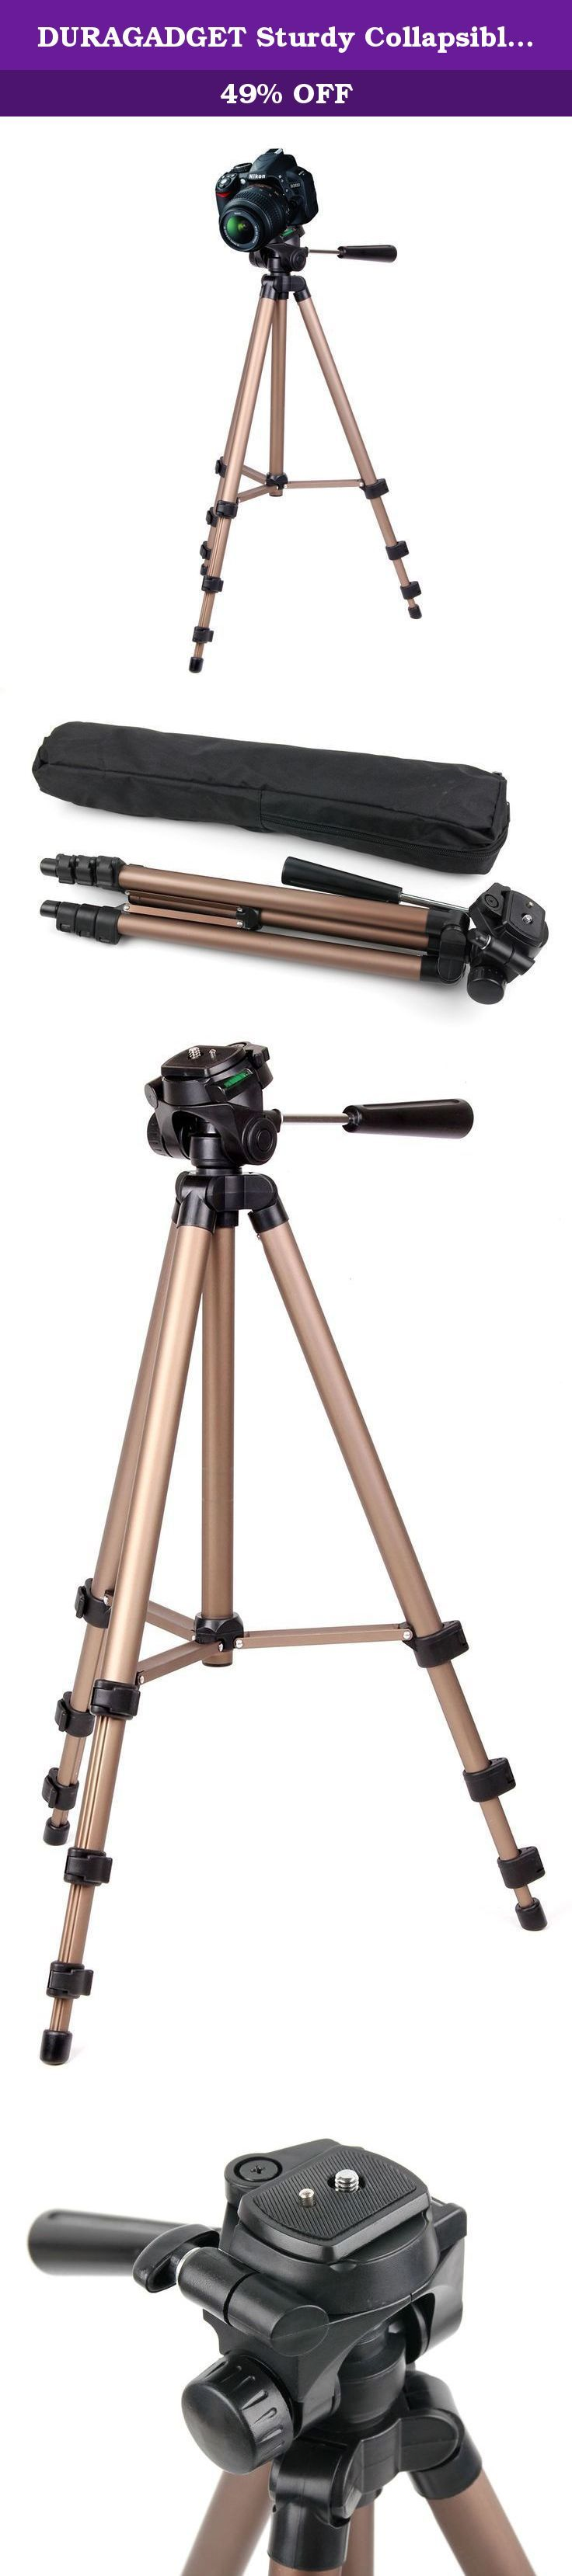 DURAGADGET Sturdy Collapsible Tripod with Extendable Legs for Nikon - D90, D800, D300s. Introducing DURAGADGET's bestselling tripod for cameras and camcorders, custom-designed to make for the perfect travel companion. Lightweight, contoured and ultra-portable, this functional tripod is as feature-packed and secure as it is stylish, and the high-quality aluminium build continues to promote this. Designed with built-in shock-absorbing, impact-resistant properties for safety and security…